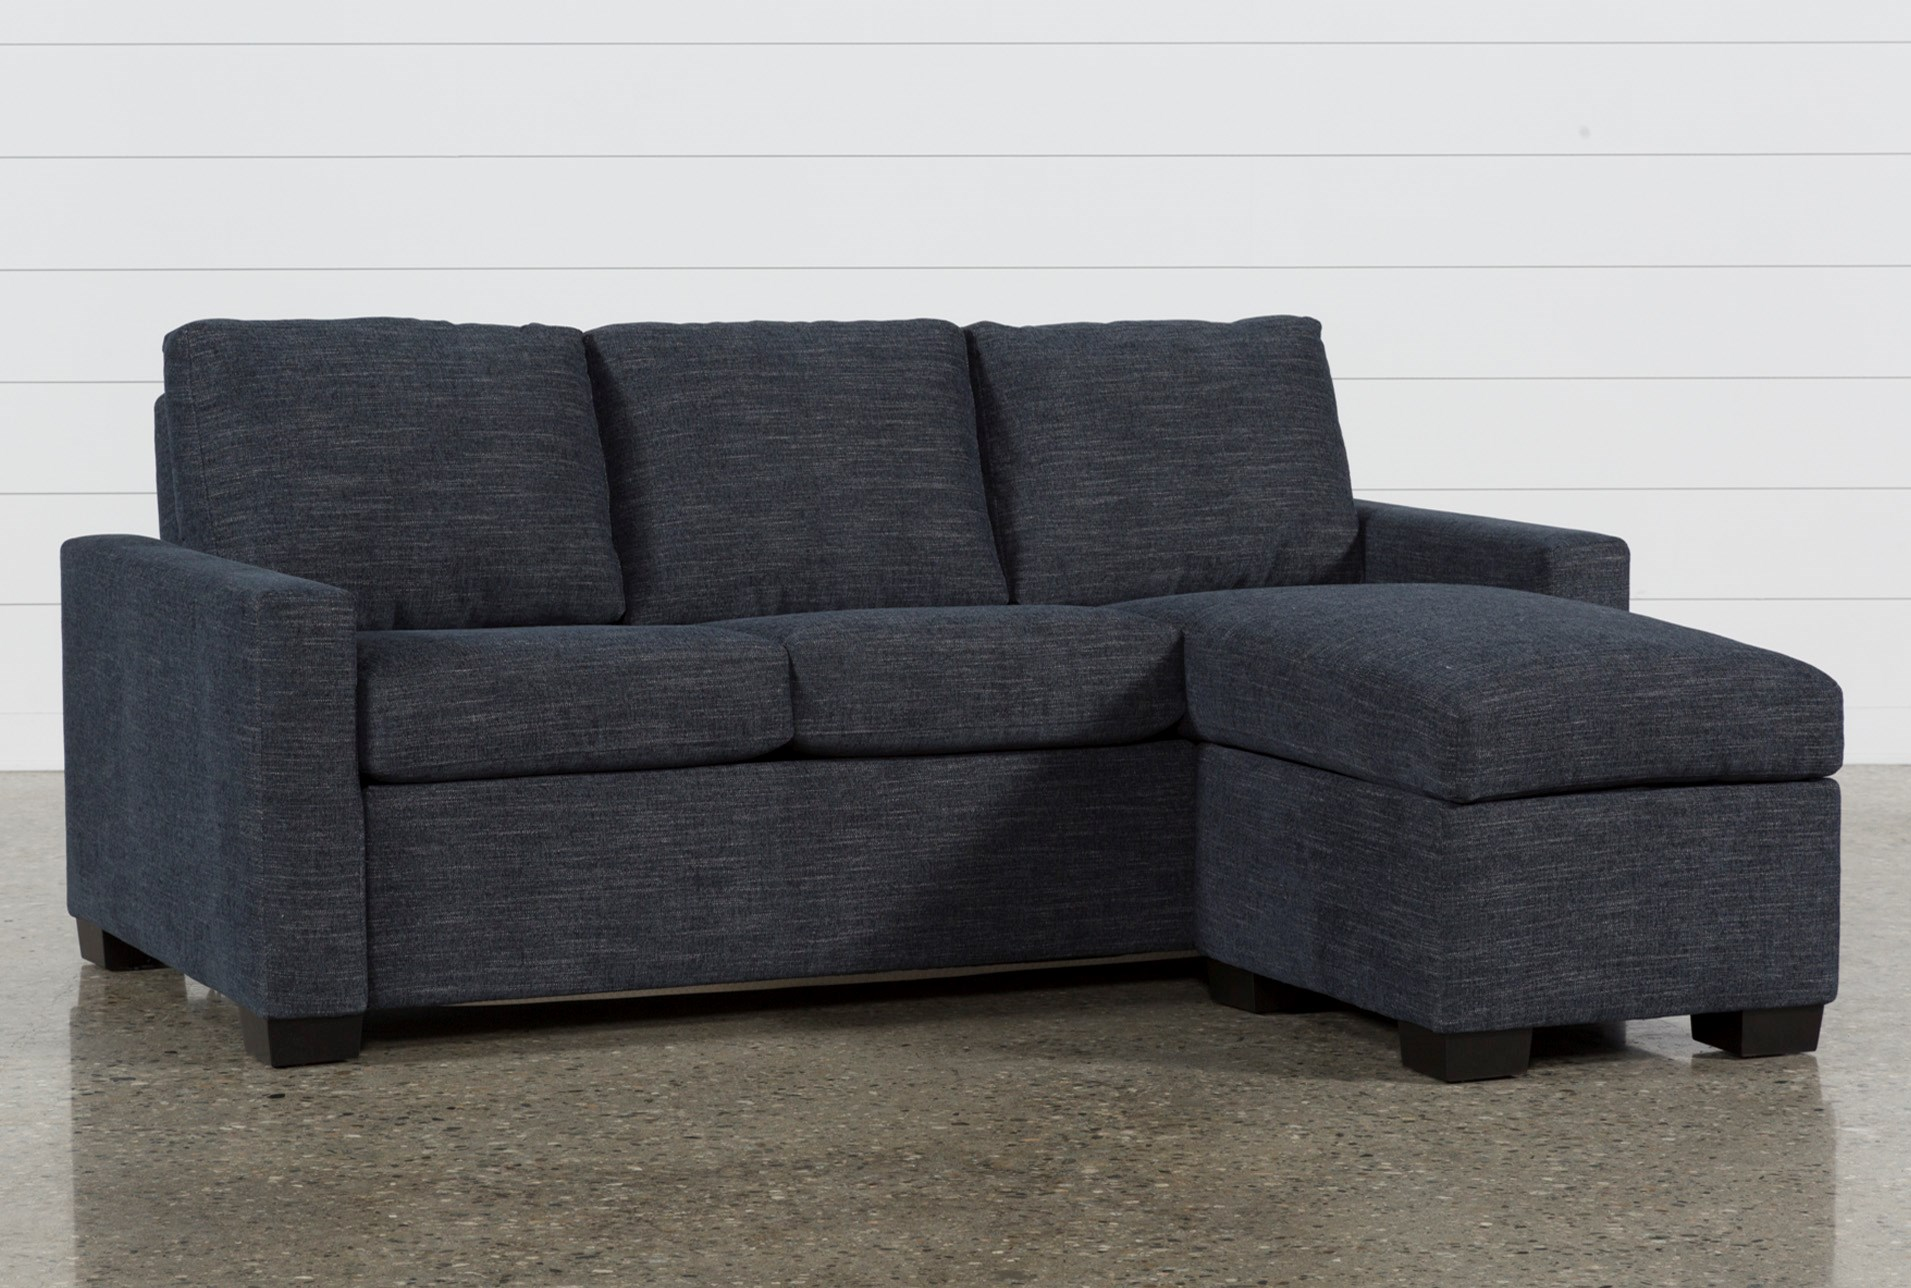 Mackenzie Denim Queen Plus Sofa Sleeper W/ Storage Chaise ...